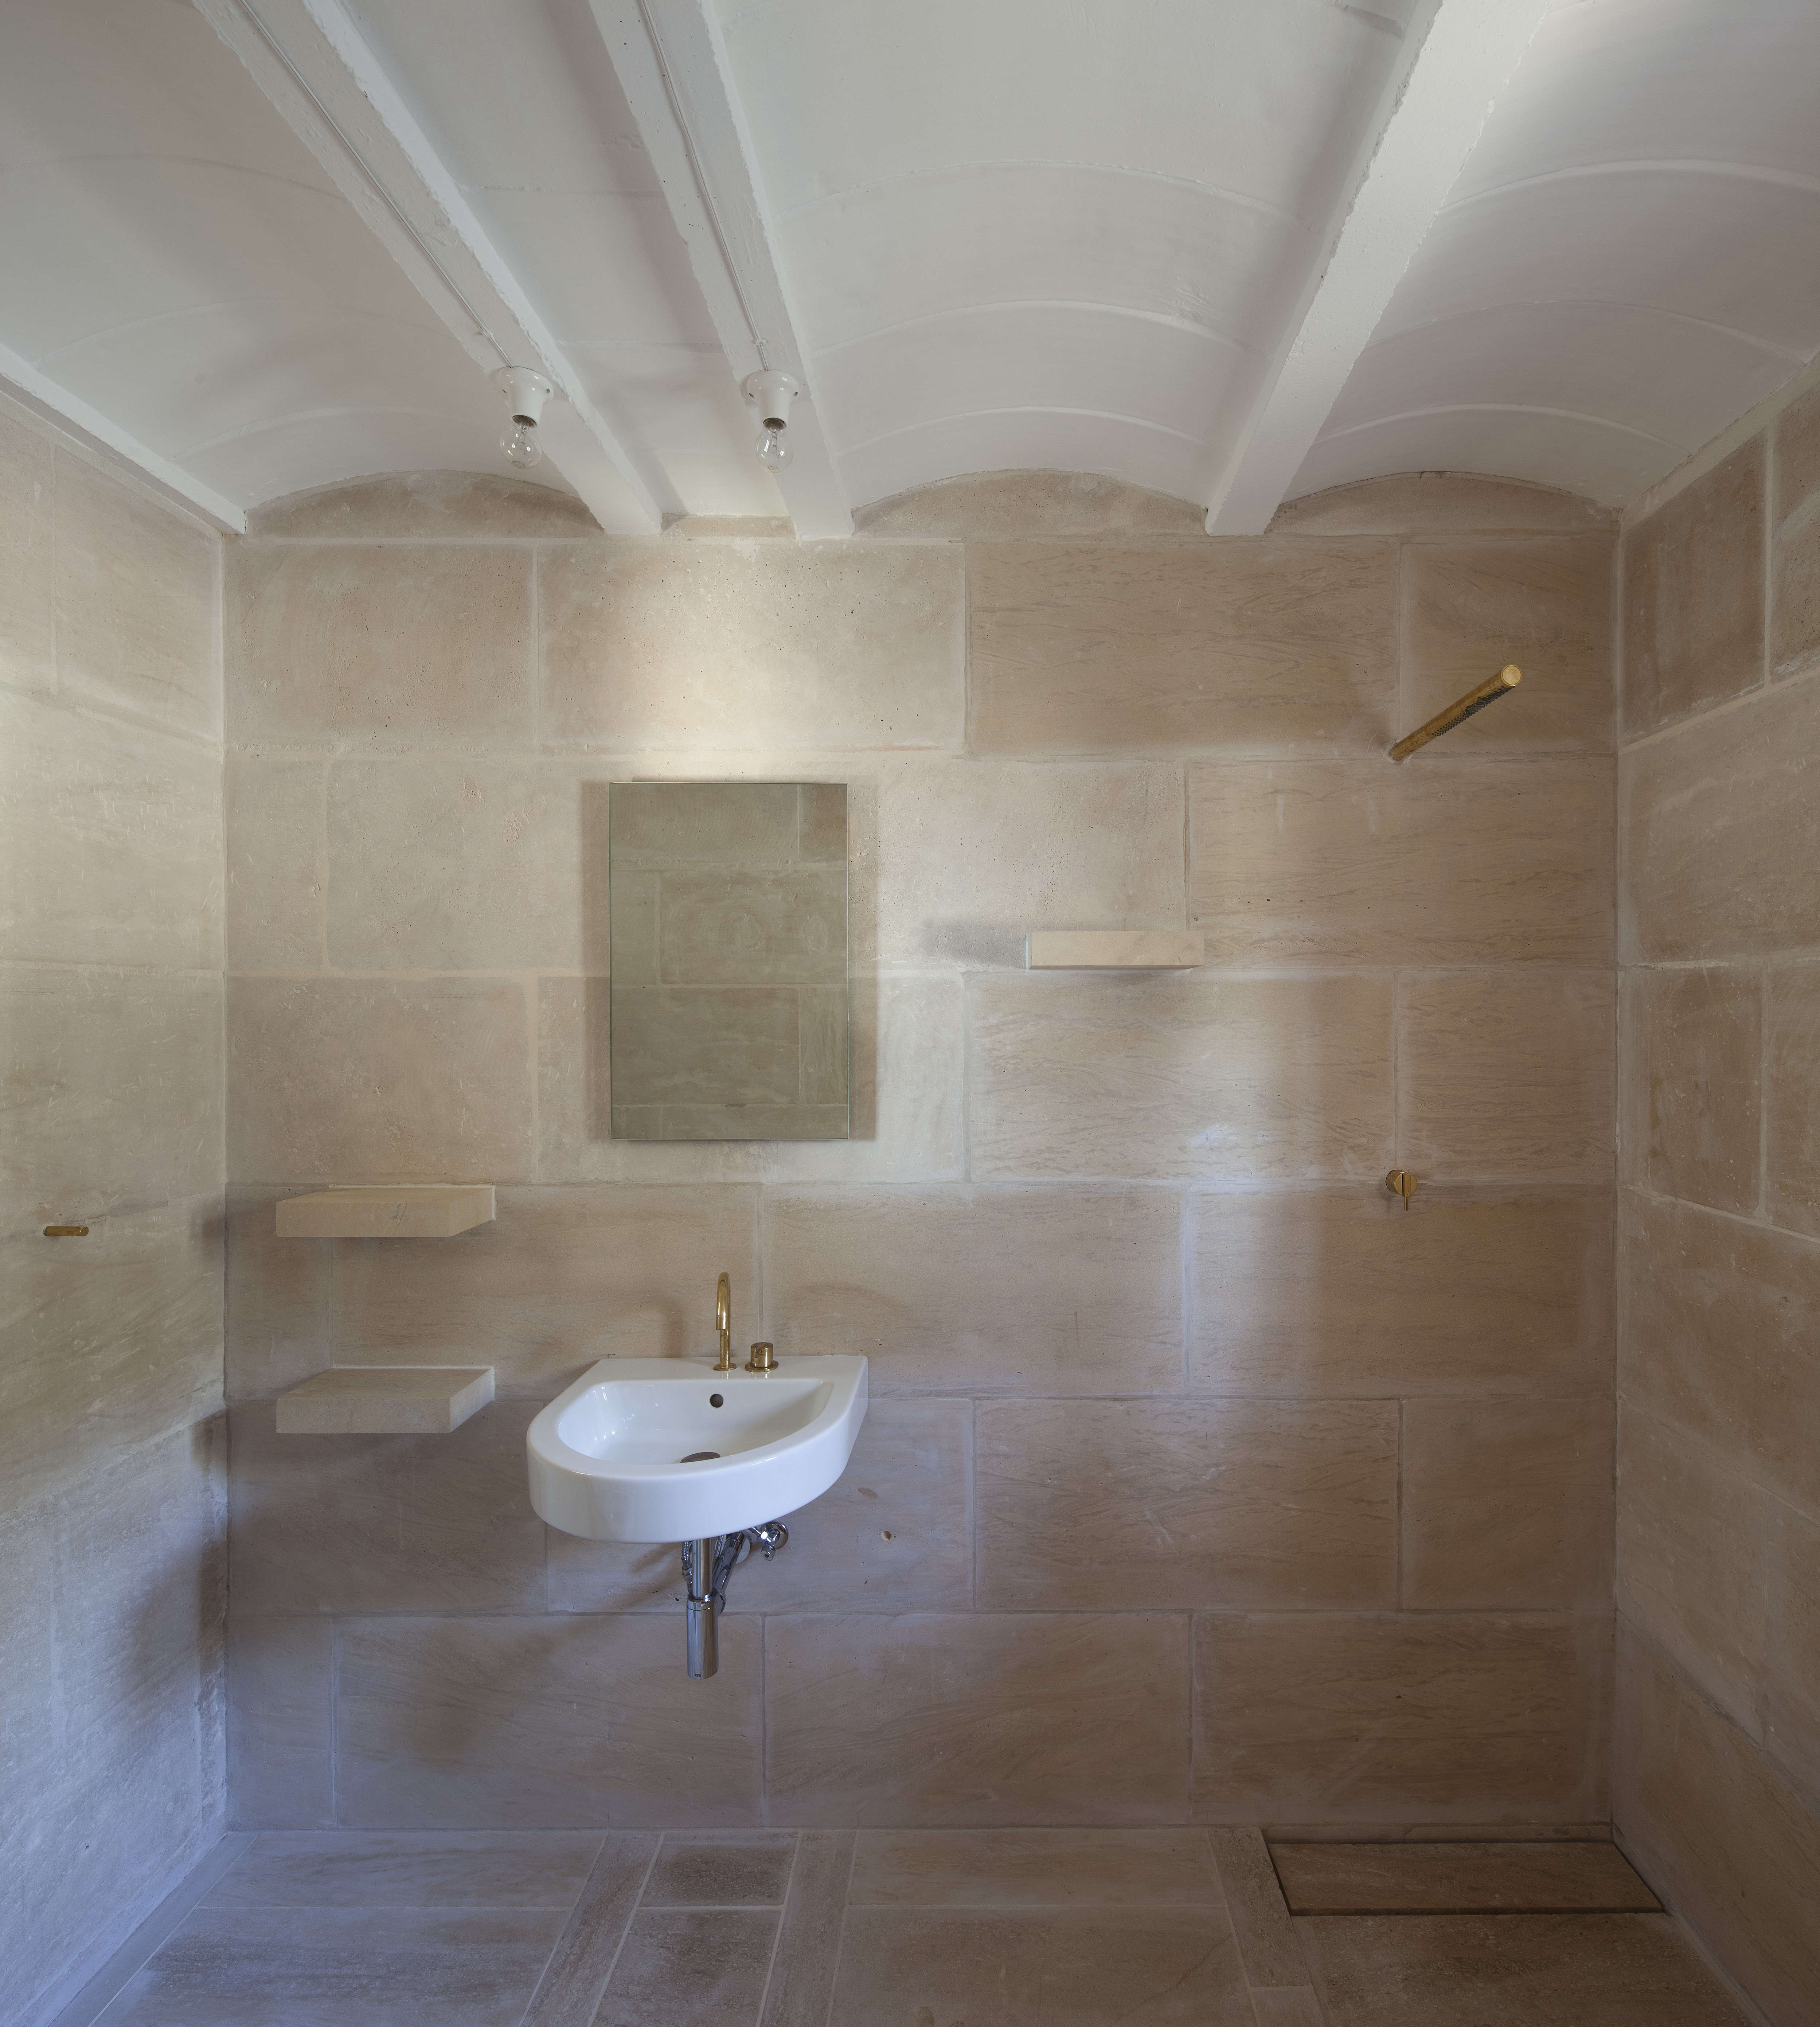 The bare bones bath features almost invisible shower fixtures and integrated stone shelving.